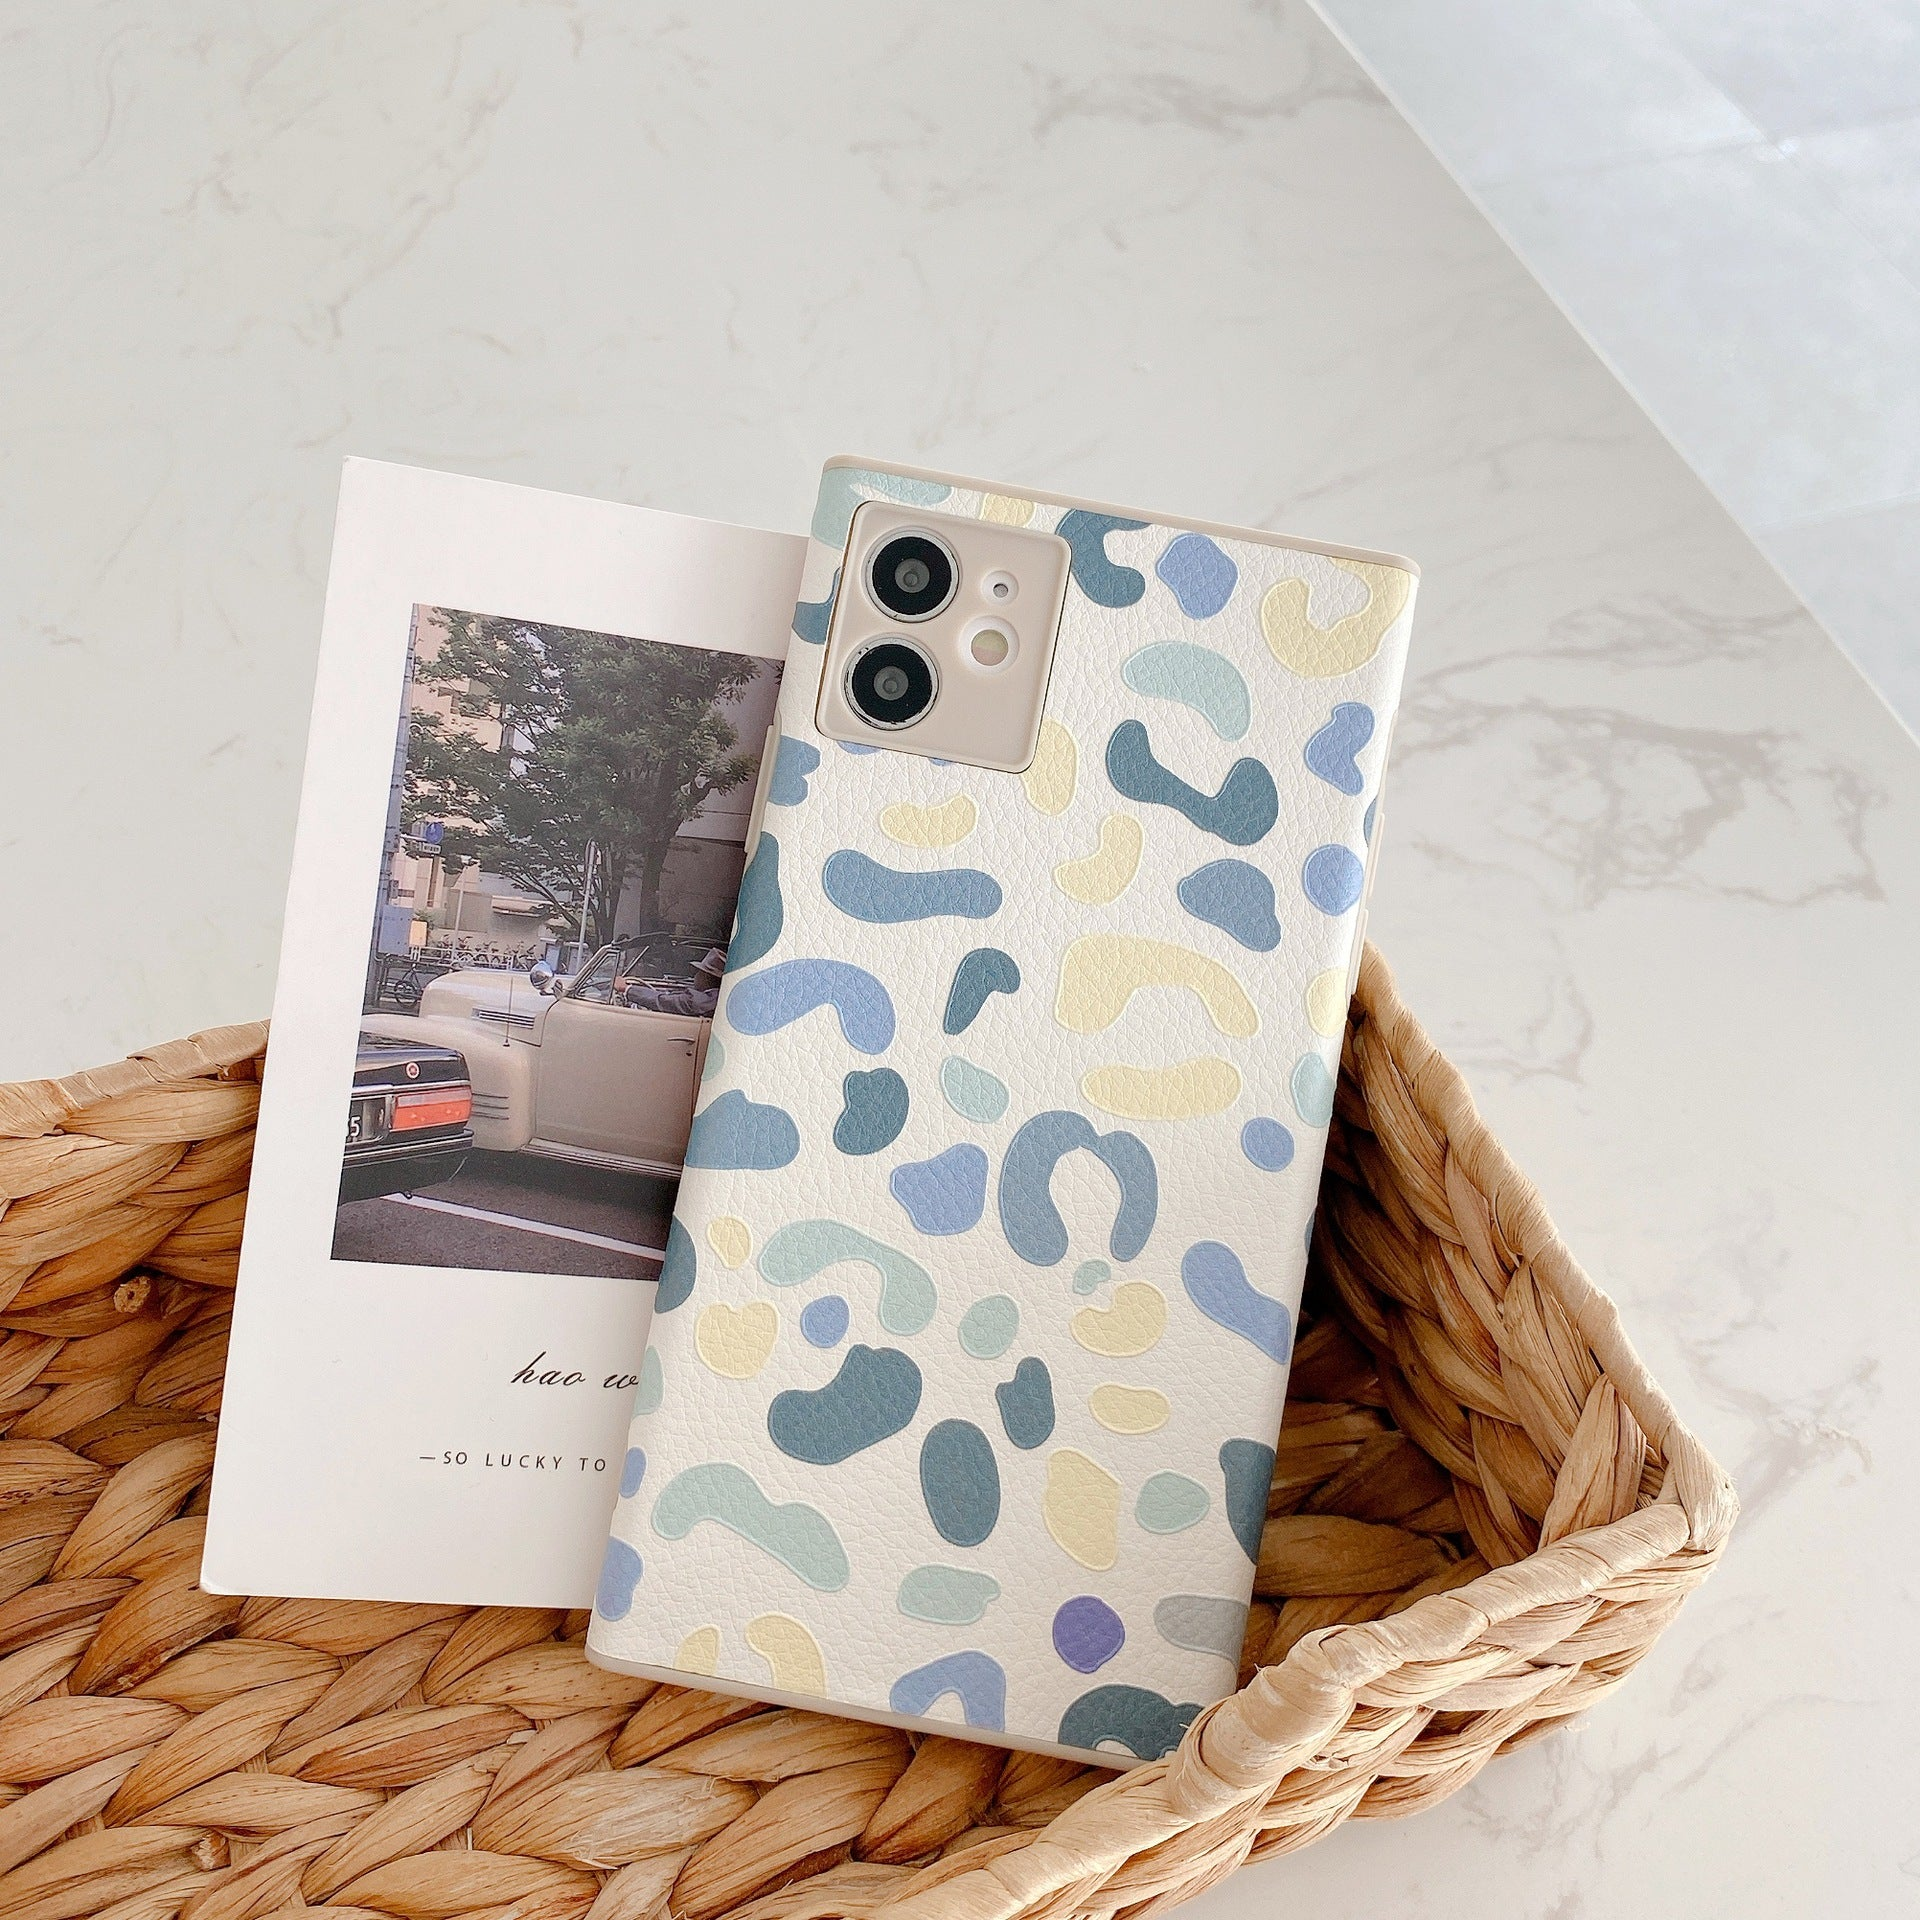 Square lambskin pattern iPhone case